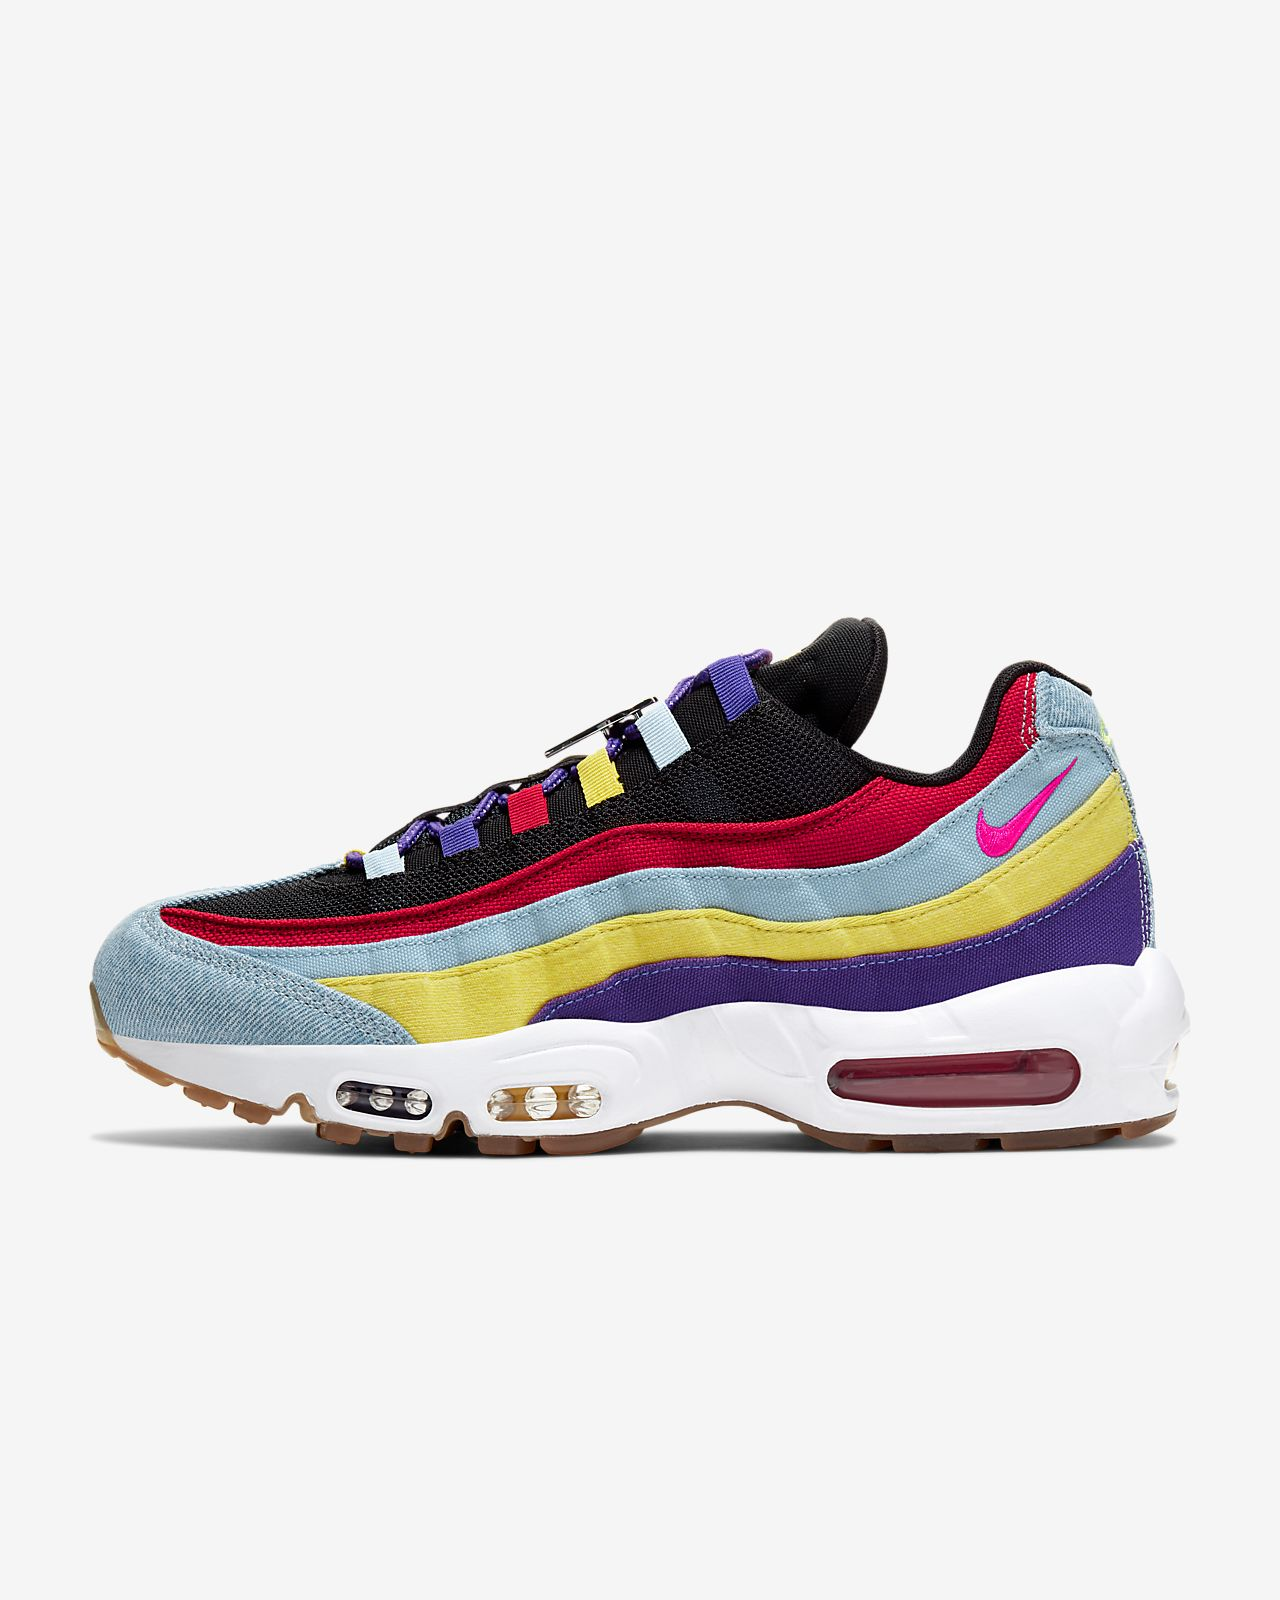 Nike Air Max 95 SP Men's Shoe